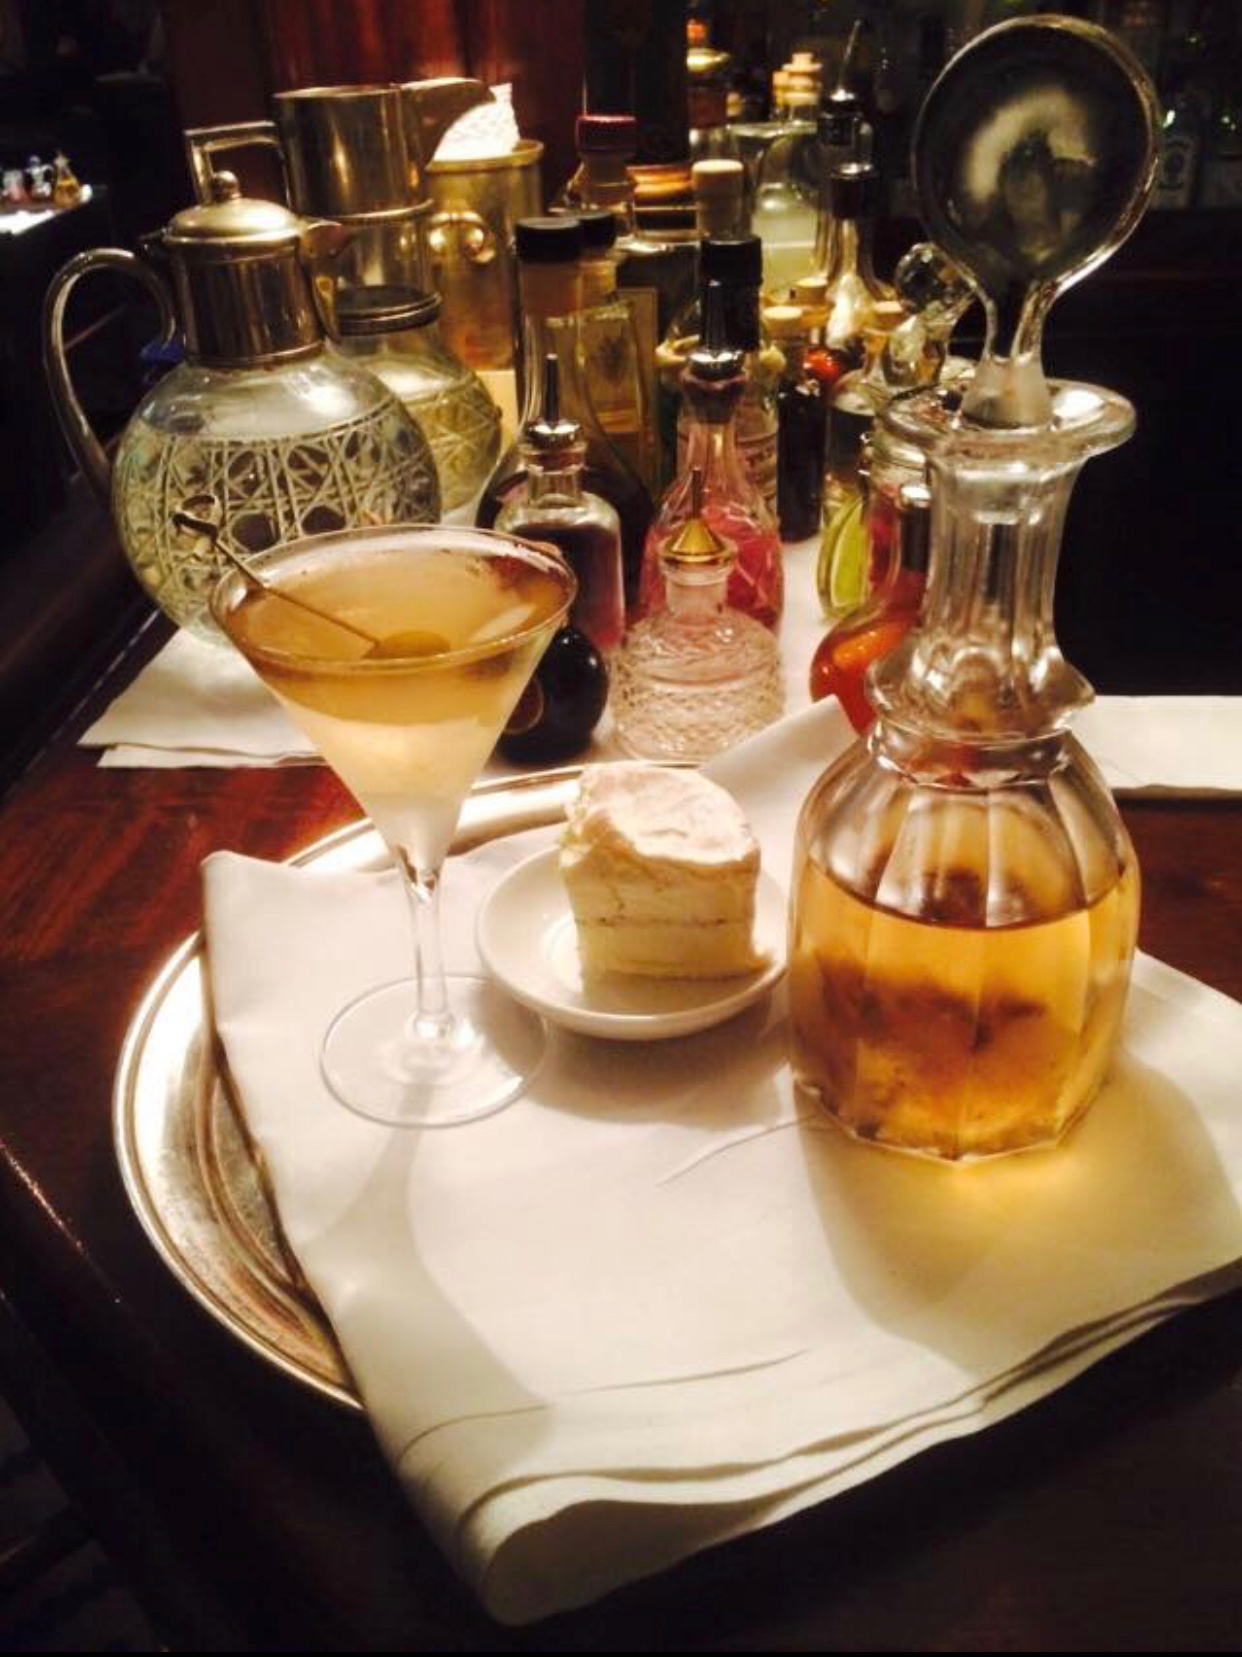 Dukes' White Truffle Martini London Lamppost